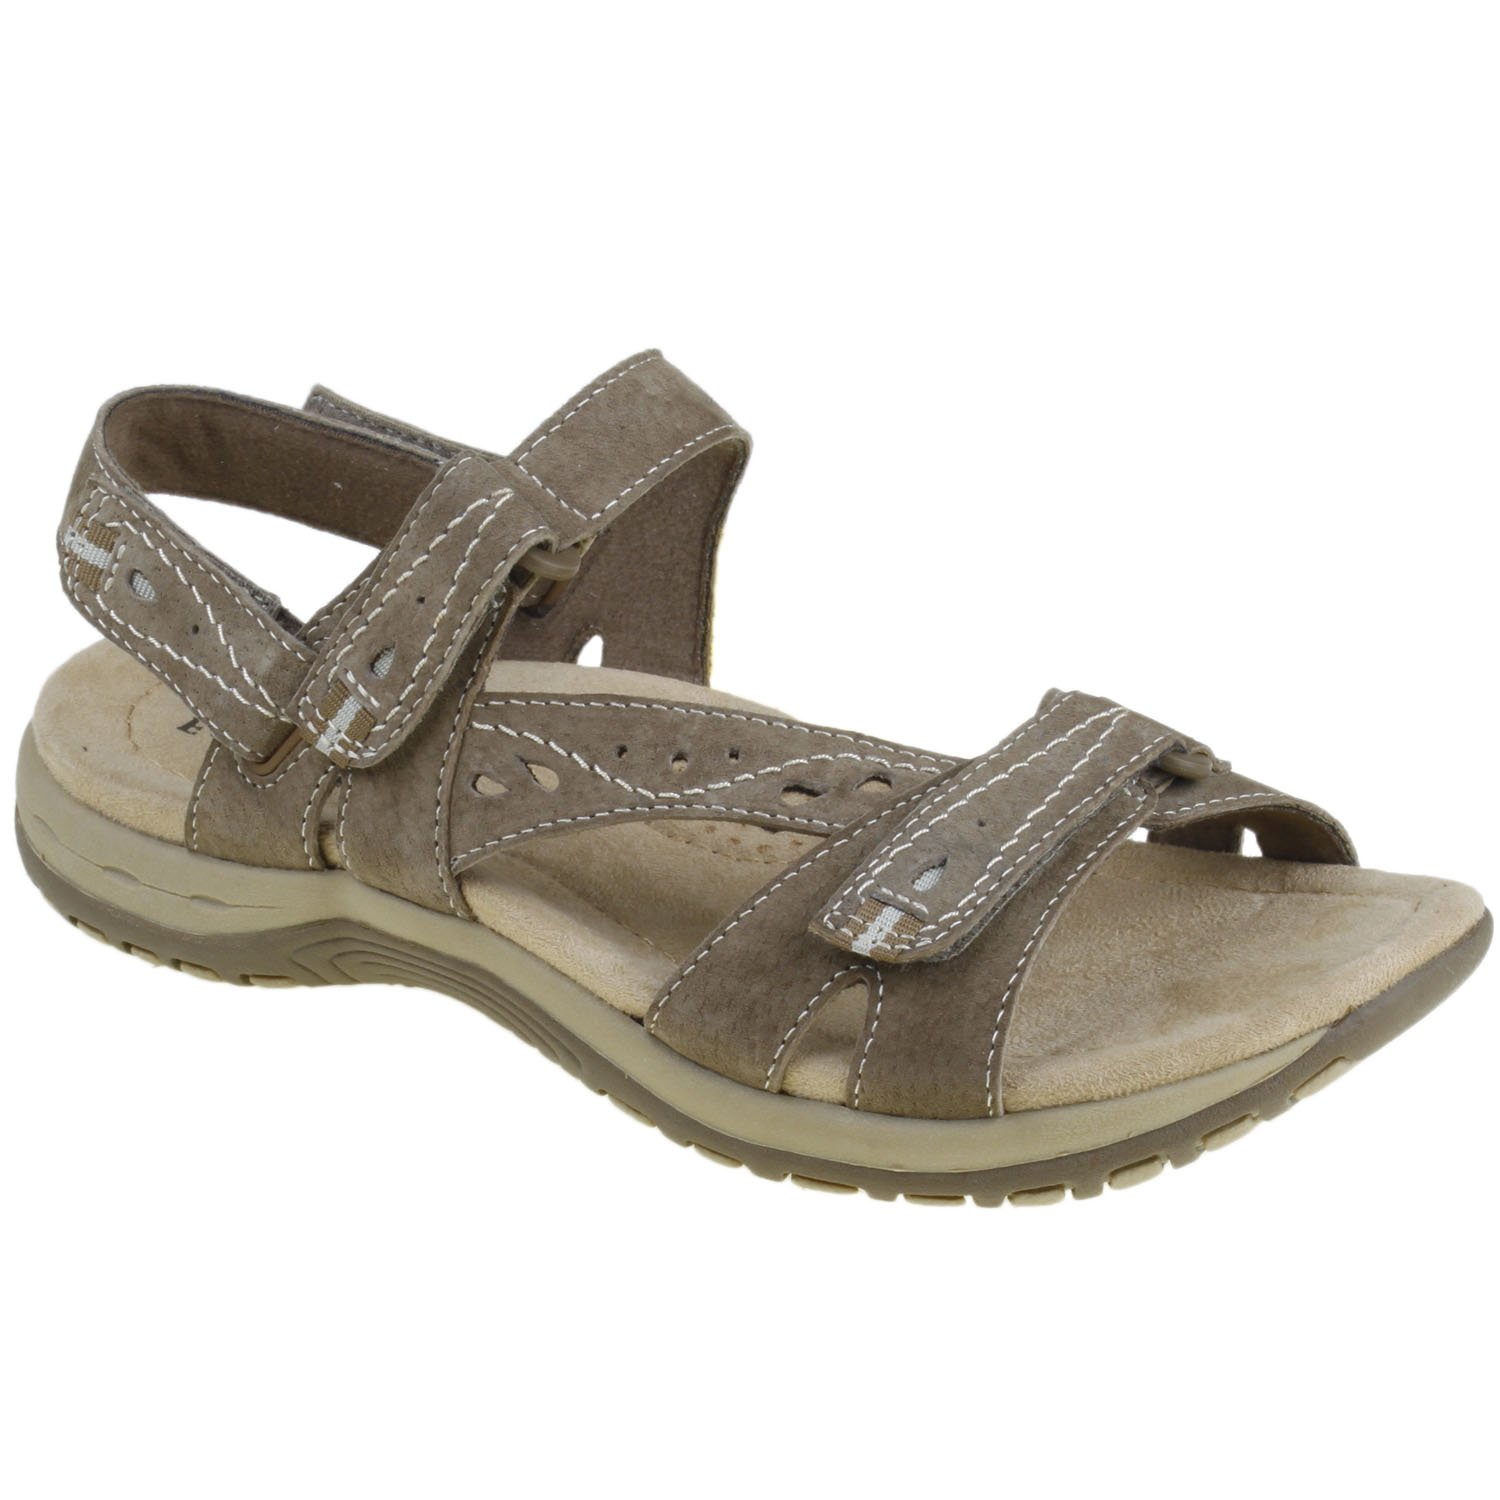 Earth Origins Women's Sophie Sandals B018QTTSF4 7 C US|Sedona Brown